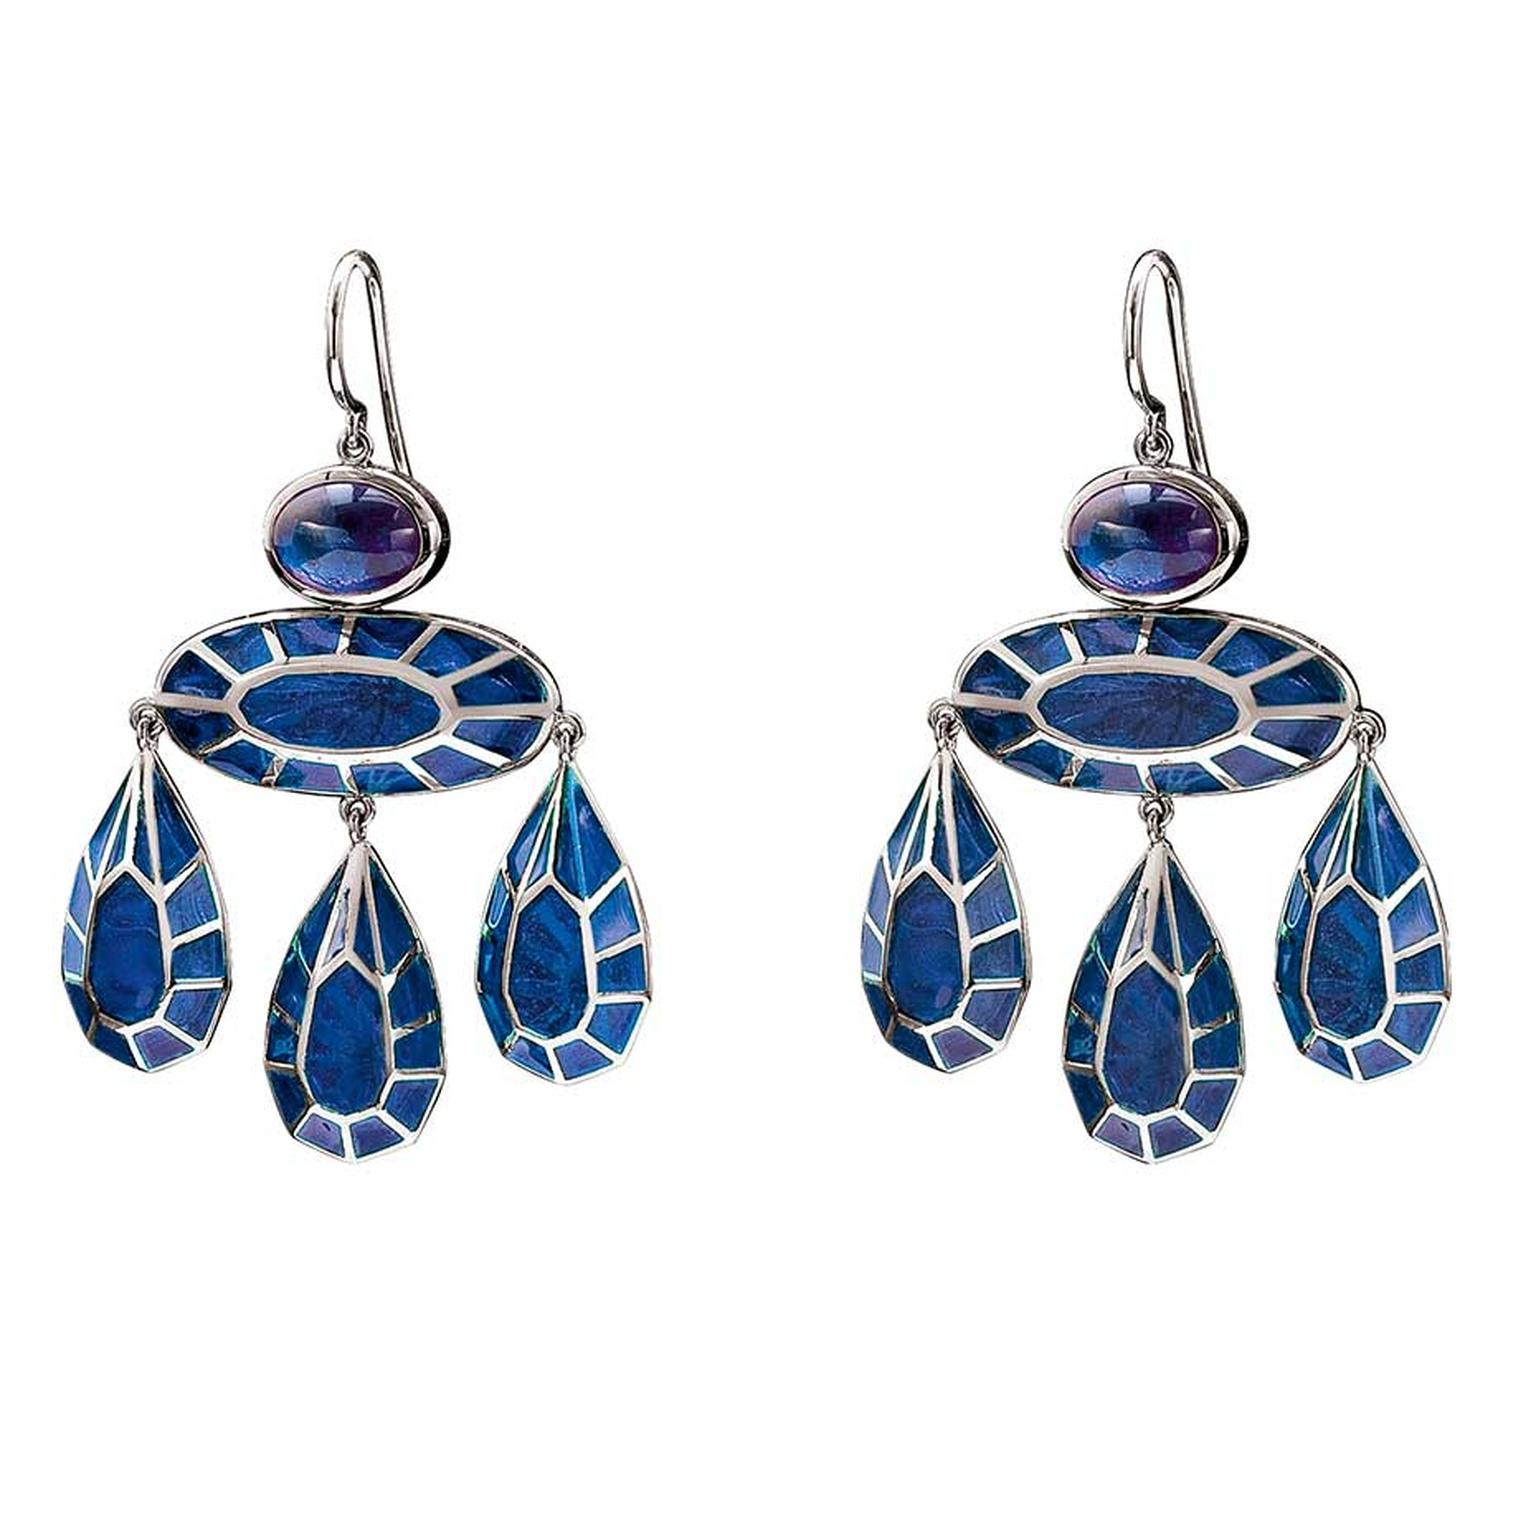 Solange Azagury-Partridge Georgian earrings set with approximately 2.00ct oval cabochon sapphire and filled with pliqué-a-jour enamel in black rhodium-plated white gold. Estimate: £6,000-£8,000. To bid now, follow the link in the article.